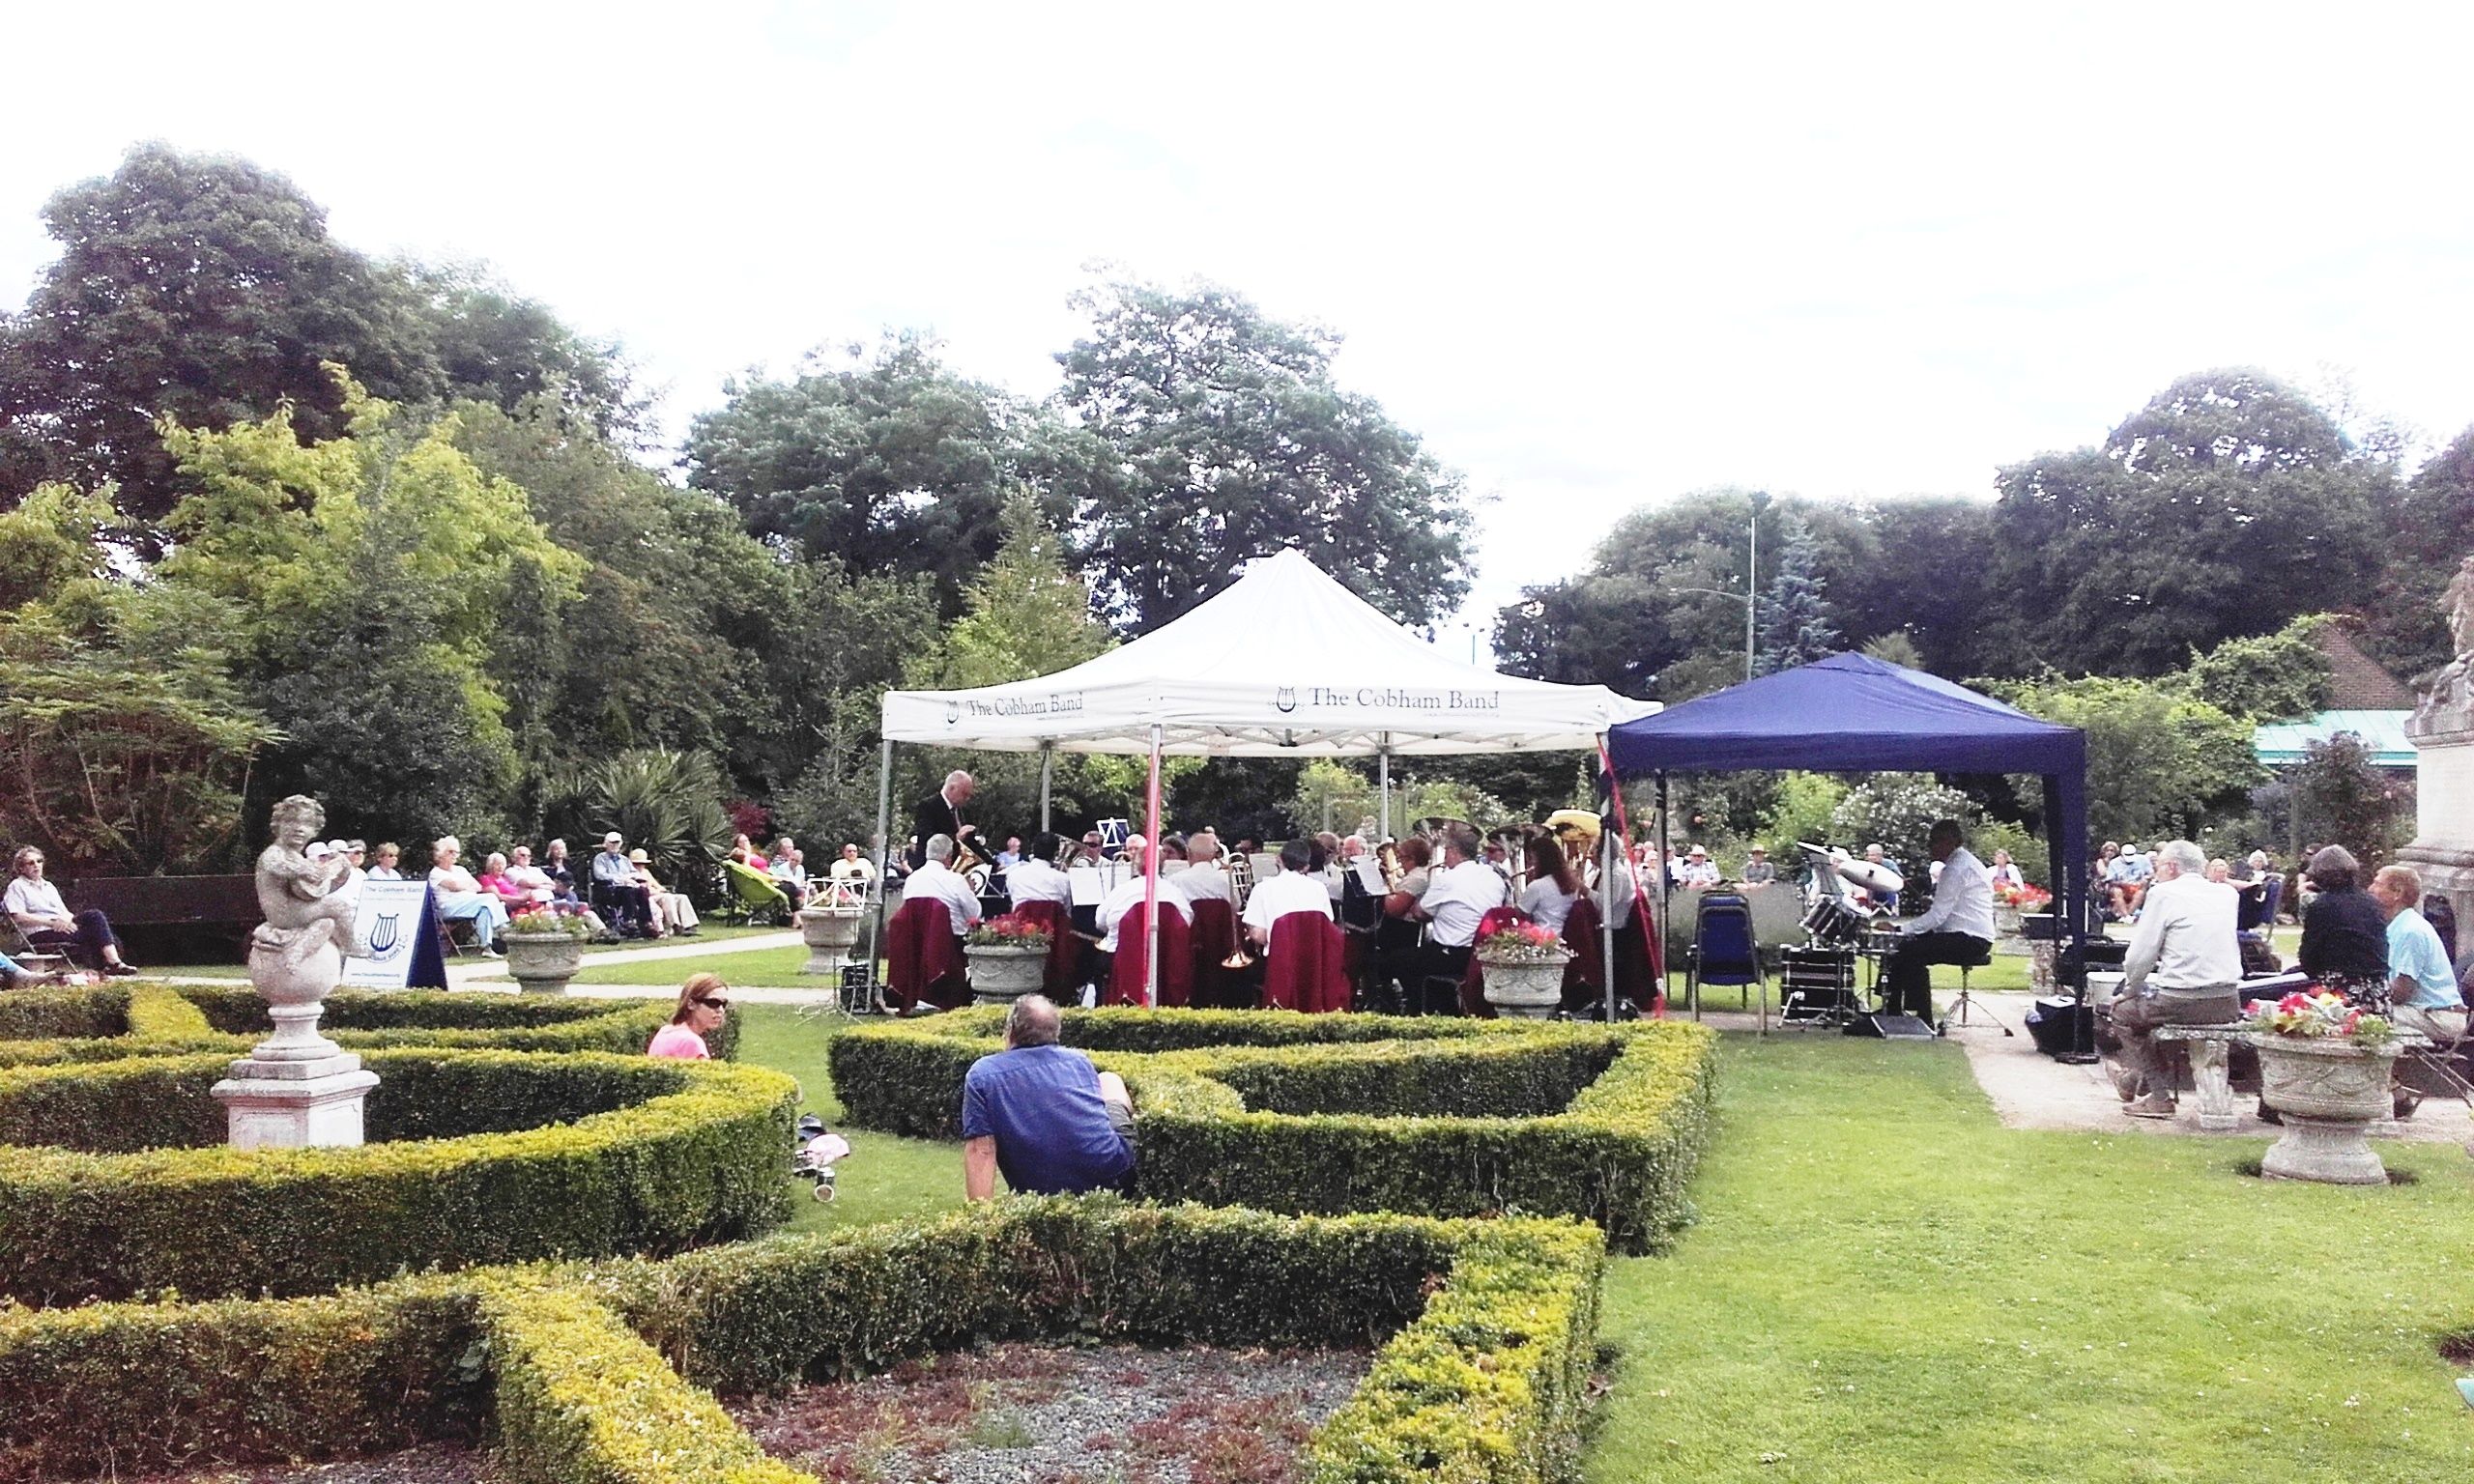 walled garden 2016 – the cobham band